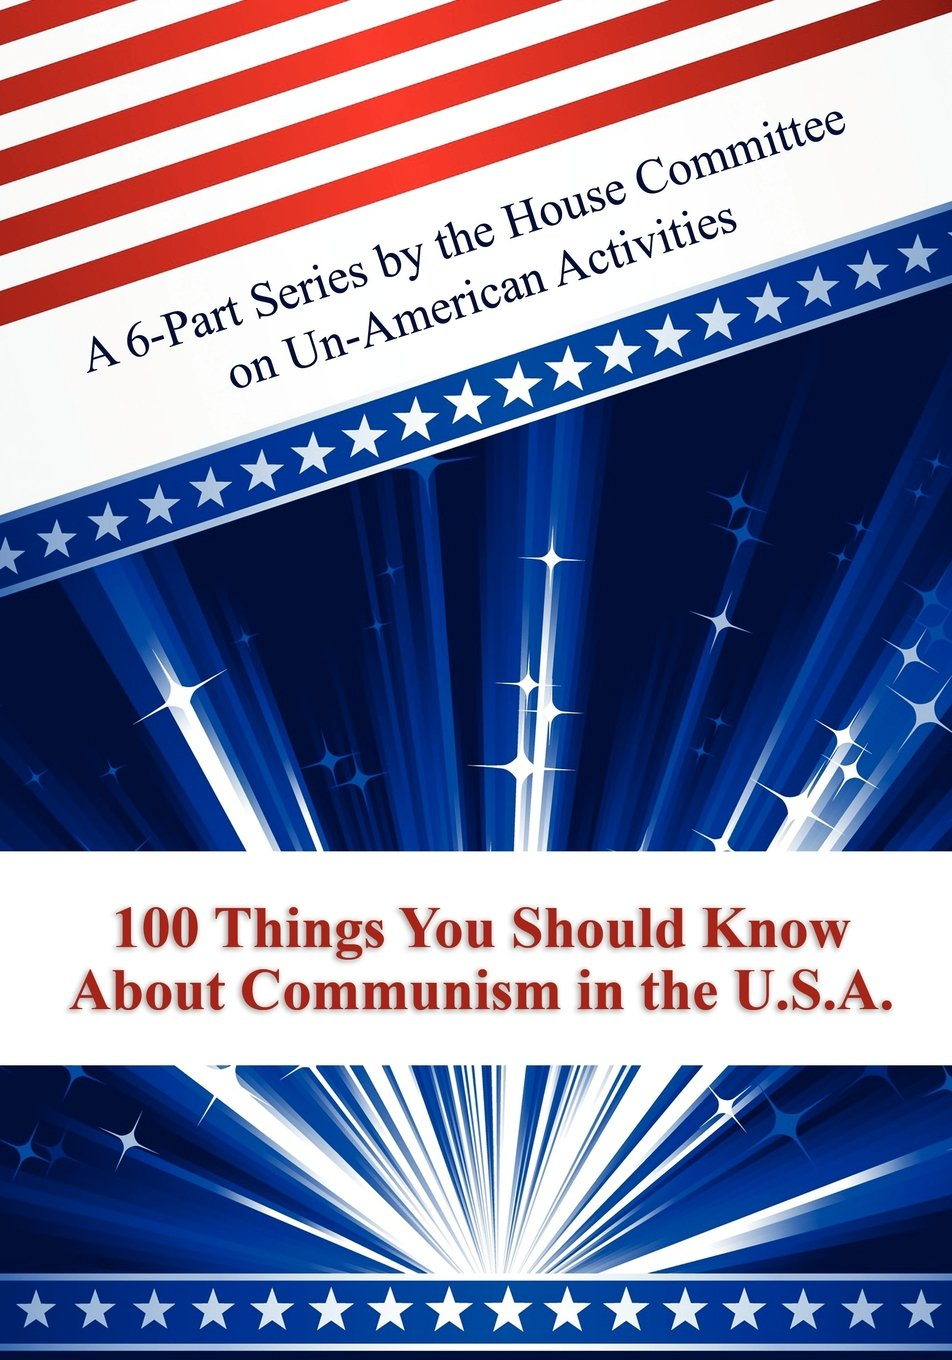 100 Things You Should Know About Communism in the U.S.A.: A 6-Part Series by the House Committee on Un-American Activities PDF